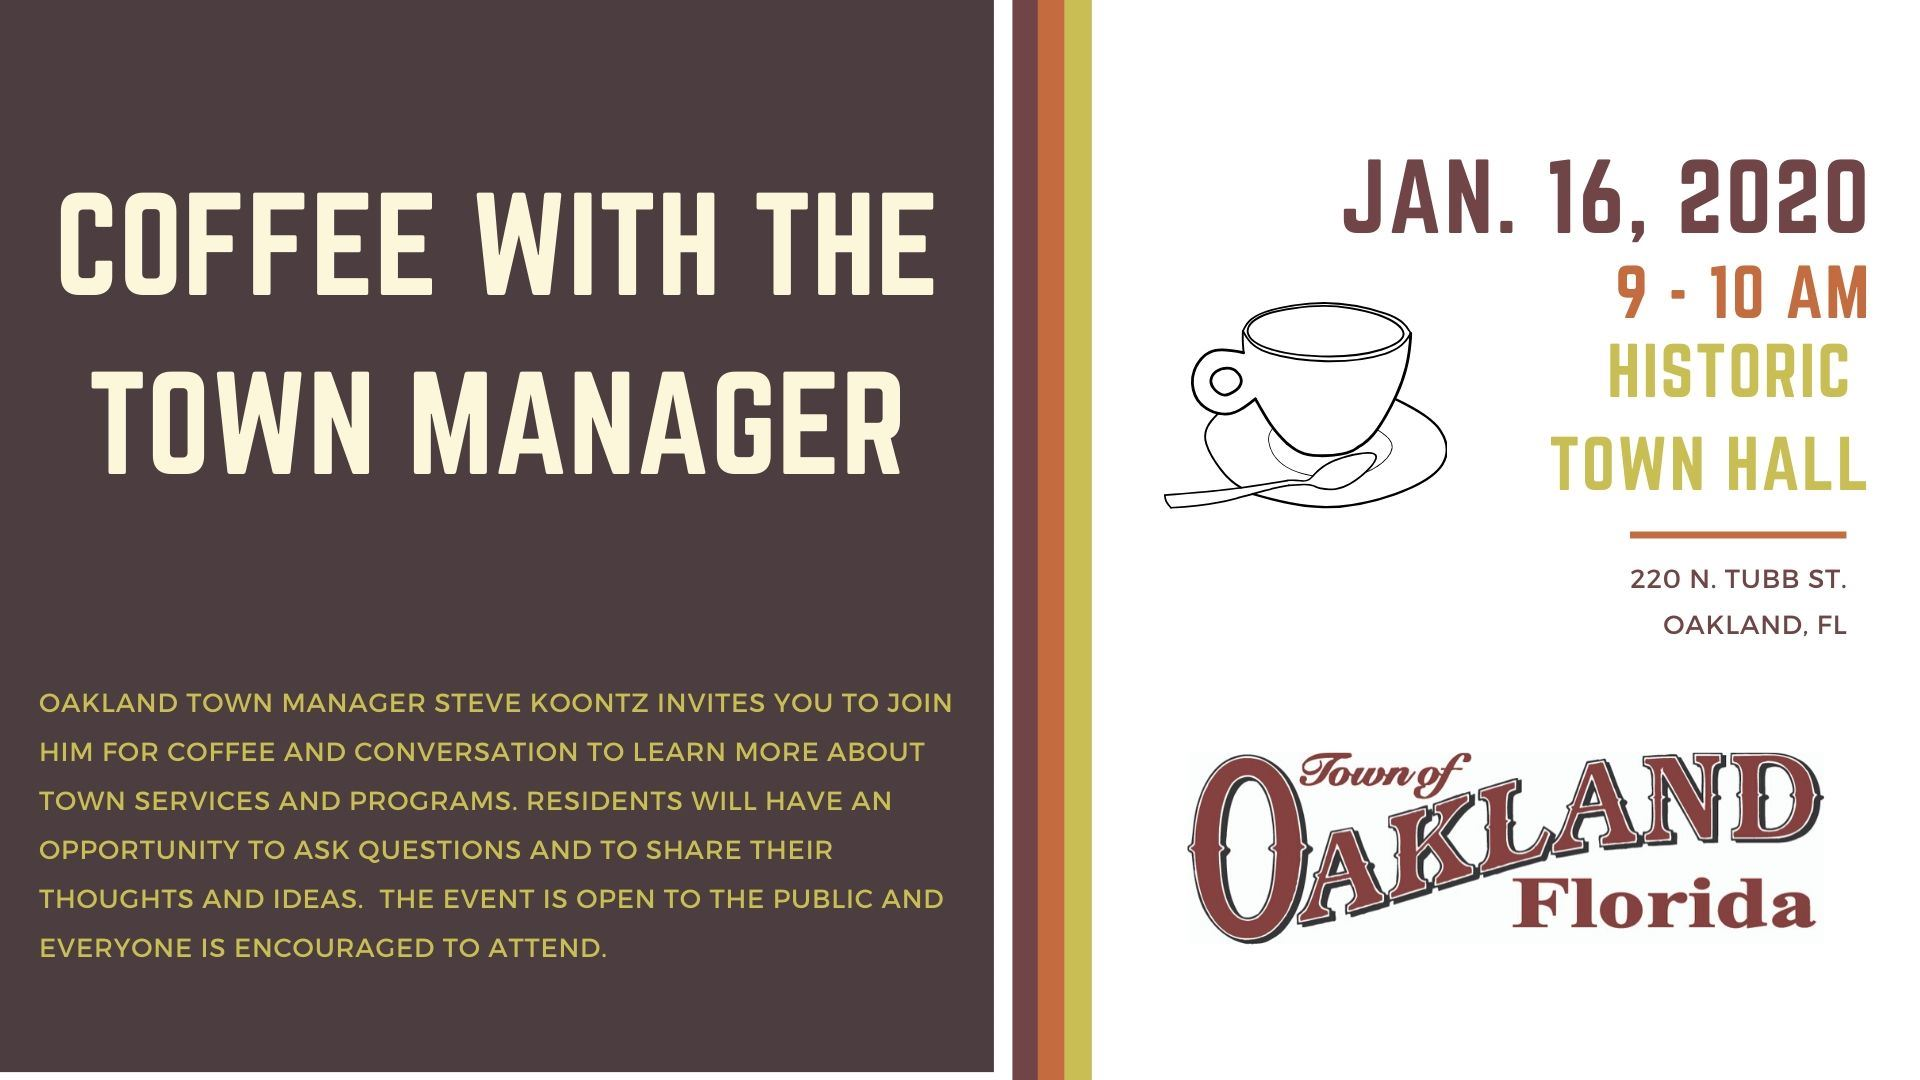 coffee with the town manager flier for January 16, 2020